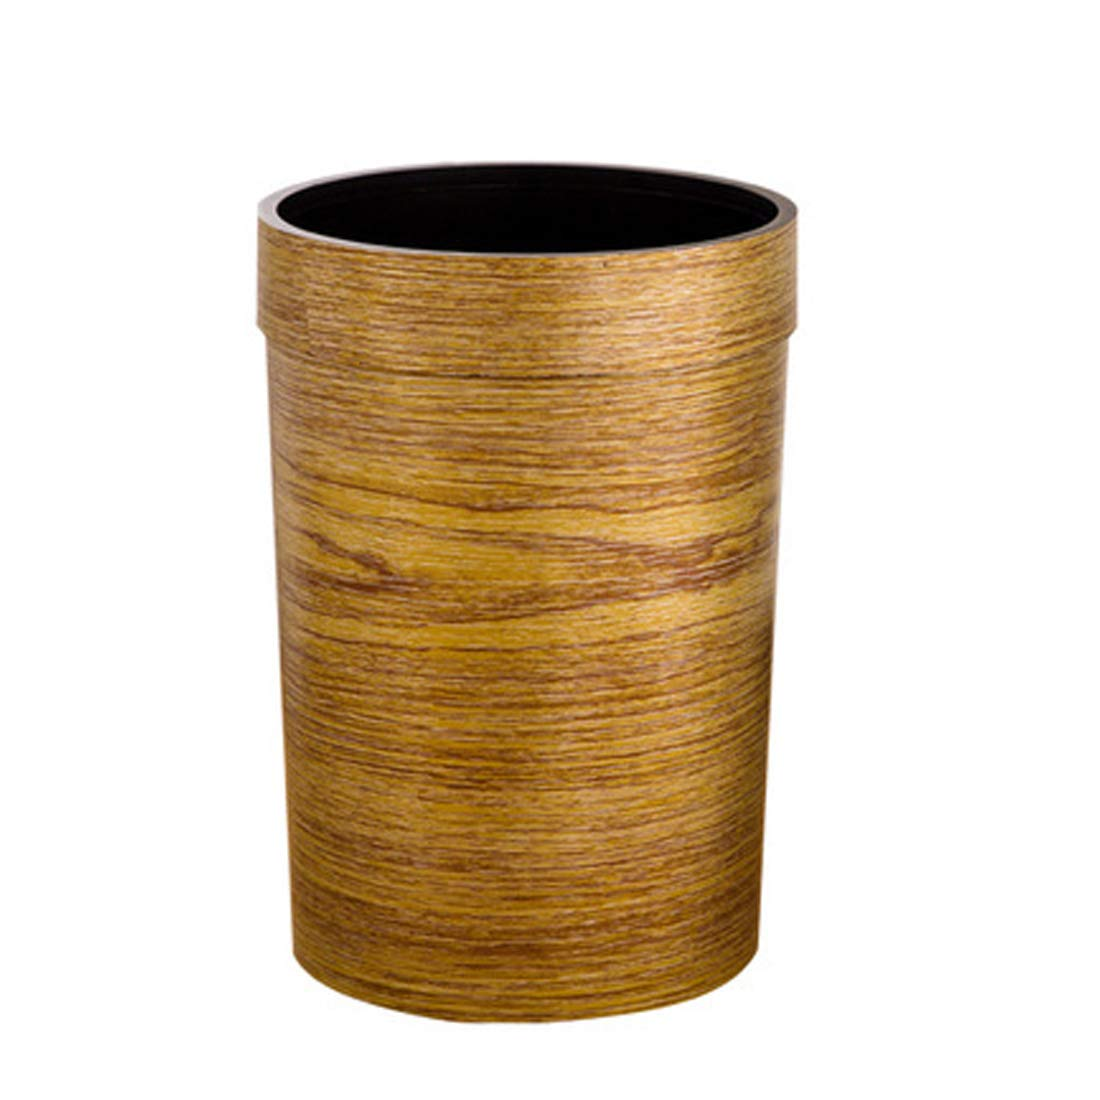 mingcheng 2.37 Gallon Small Trash Can Capacity Stylish Barn Wood Garbage Can Waste Basket Bathroom, Bedroom, Office - Tan L